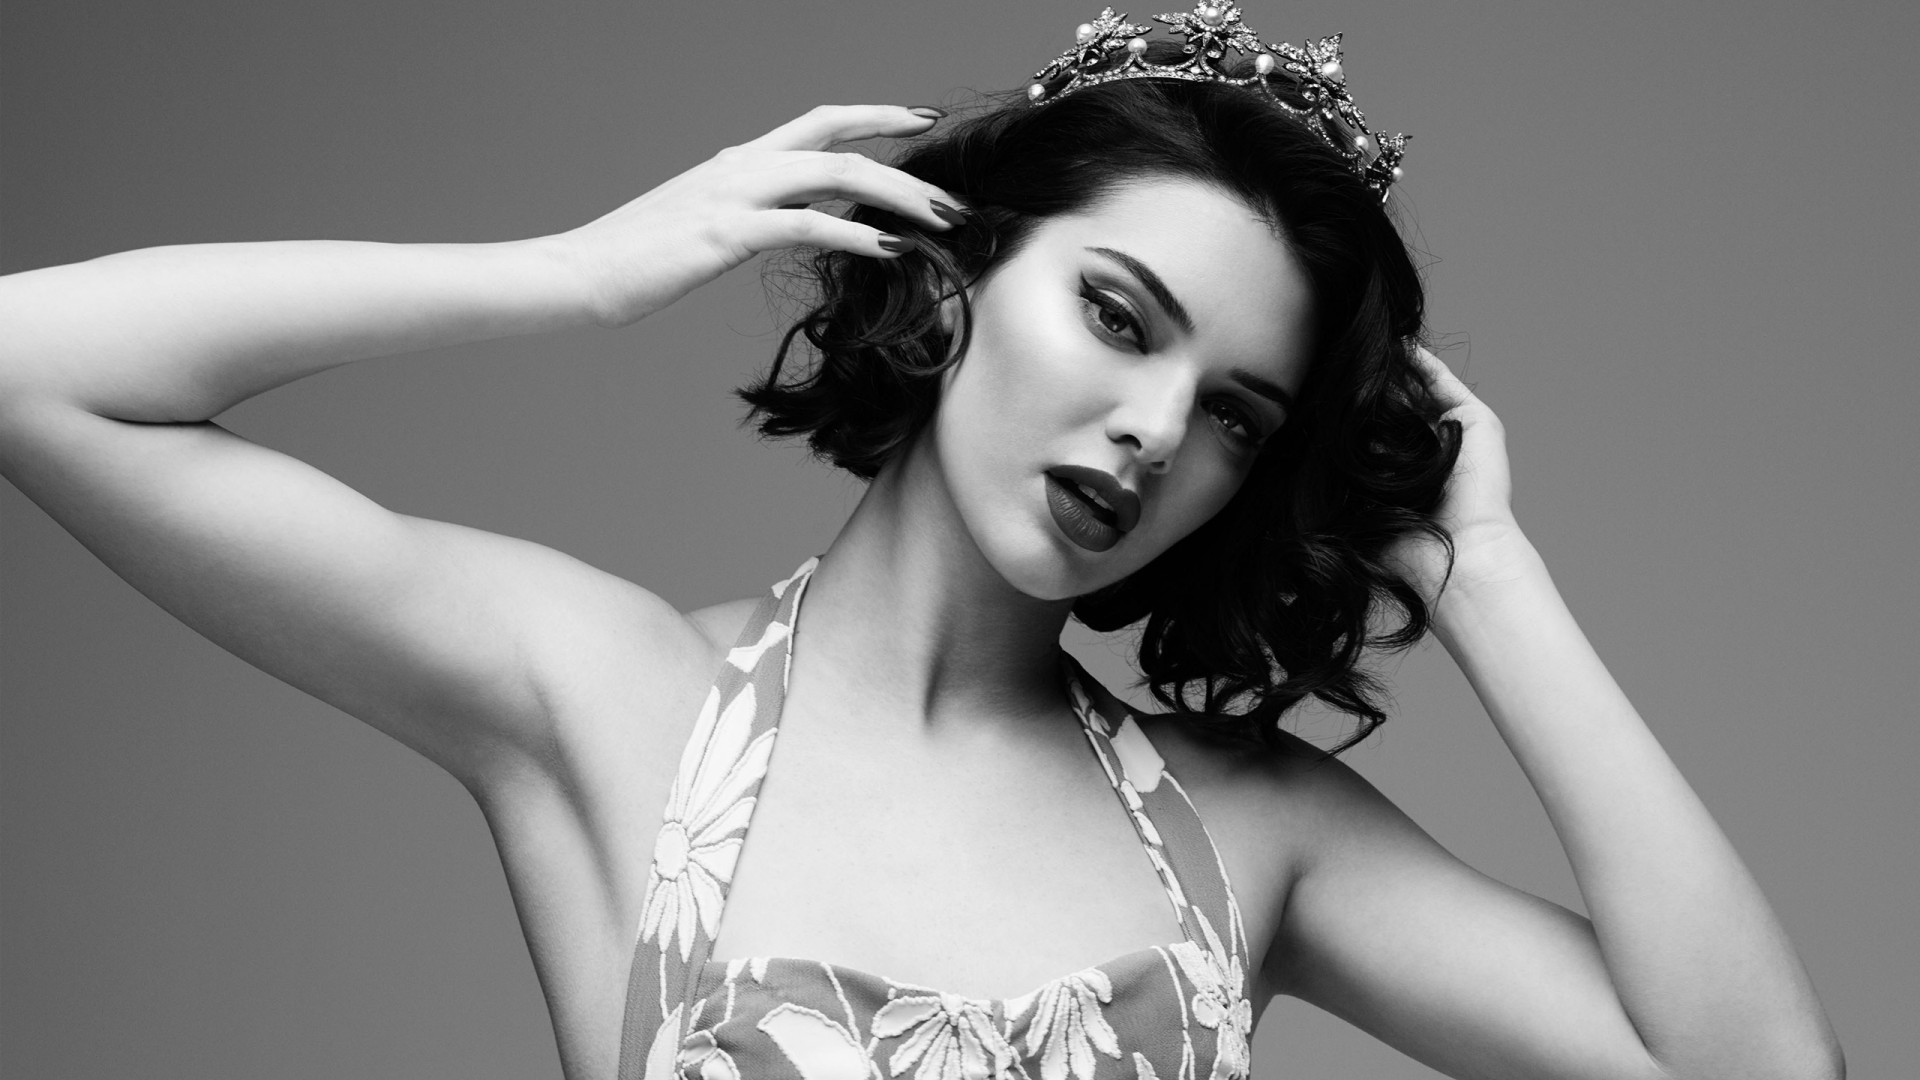 Lady Gaga Iphone 5 Wallpaper Kendall Jenner Marilyn Monroe 2017 Wallpapers Hd